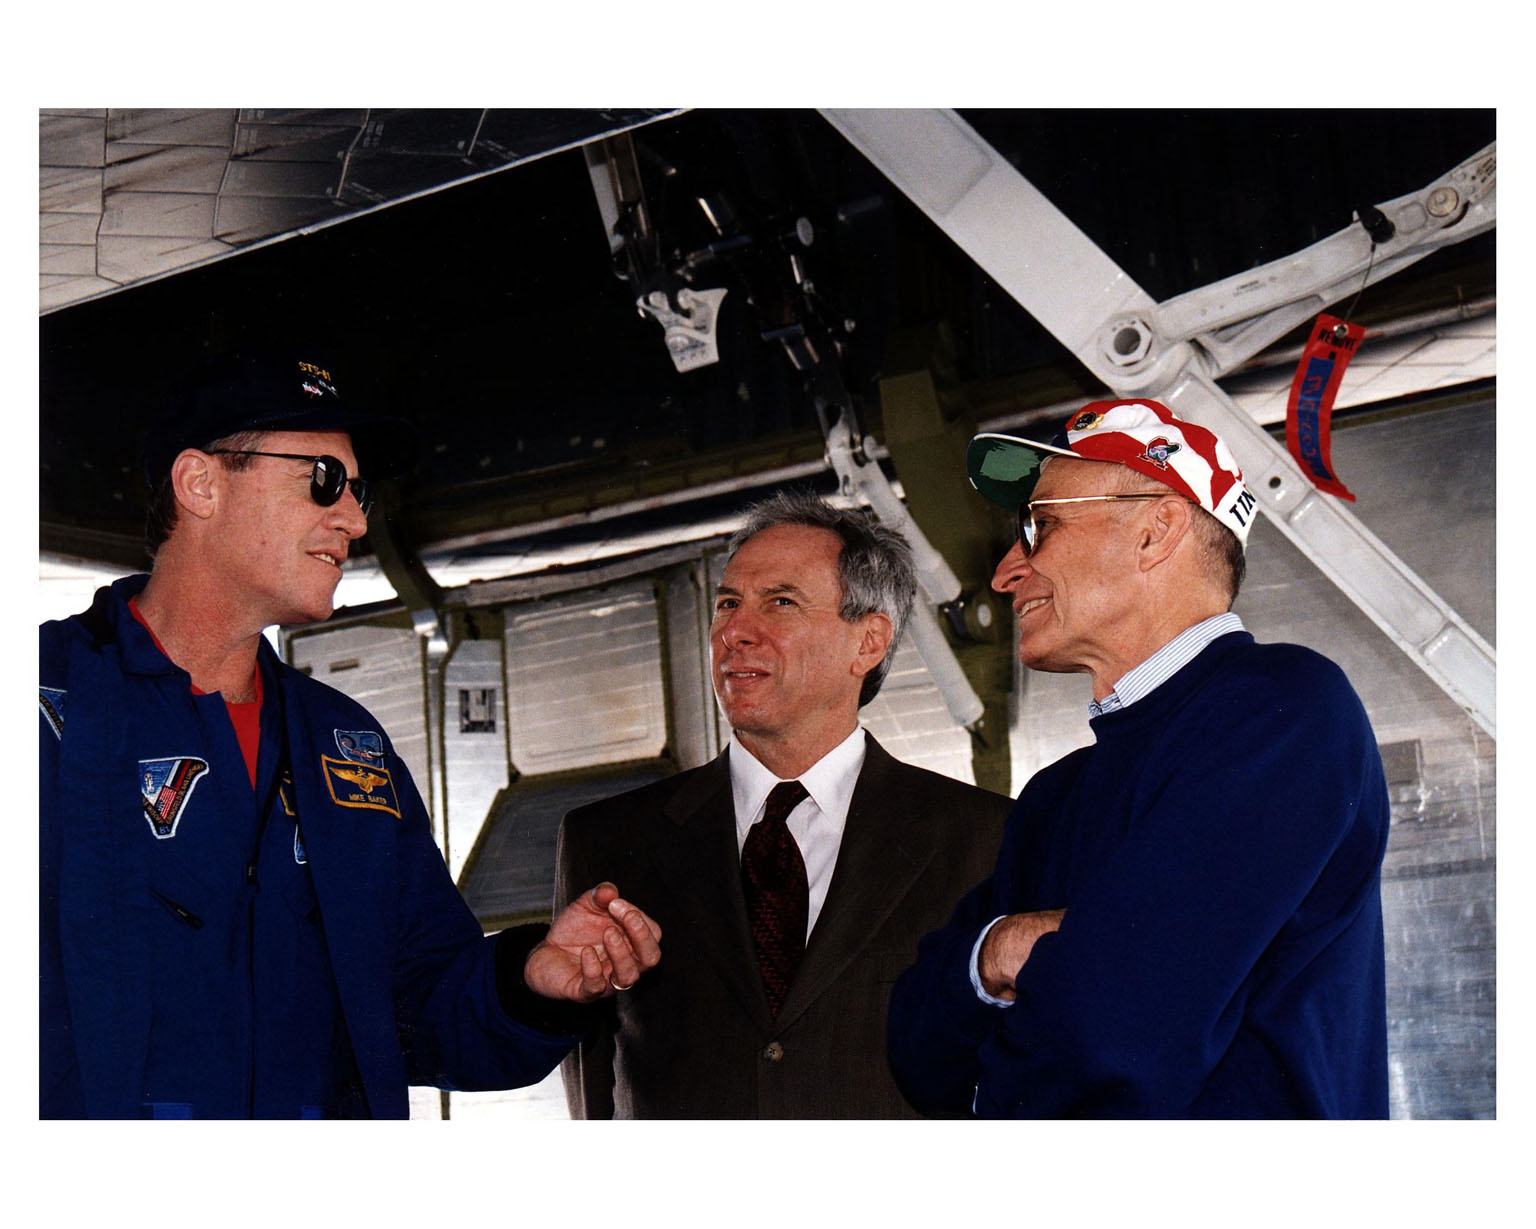 KENNEDY SPACE CENTER, FLA. -- NASA Administrator Daniel S. Goldin (center) and KSC Director of Shuttle Operations Robert B. Sieck (right) discuss the successful conclusion of the STS-81 mission with Mission Commander Michael A. Baker (left). They are underneath the Space Shuttle orbiter Atlantis after the space plane landed on Runway 33 at the KSC Shuttle Landing Facility at 9:22:44 a.m. EST Jan. 22 to conclude the fifth Shuttle-Mir docking mission. At main gear touchdown, the STS-81 mission duration was 10 days, 4 hours, 55 minutes. This was the 34th KSC landing in Shuttle history